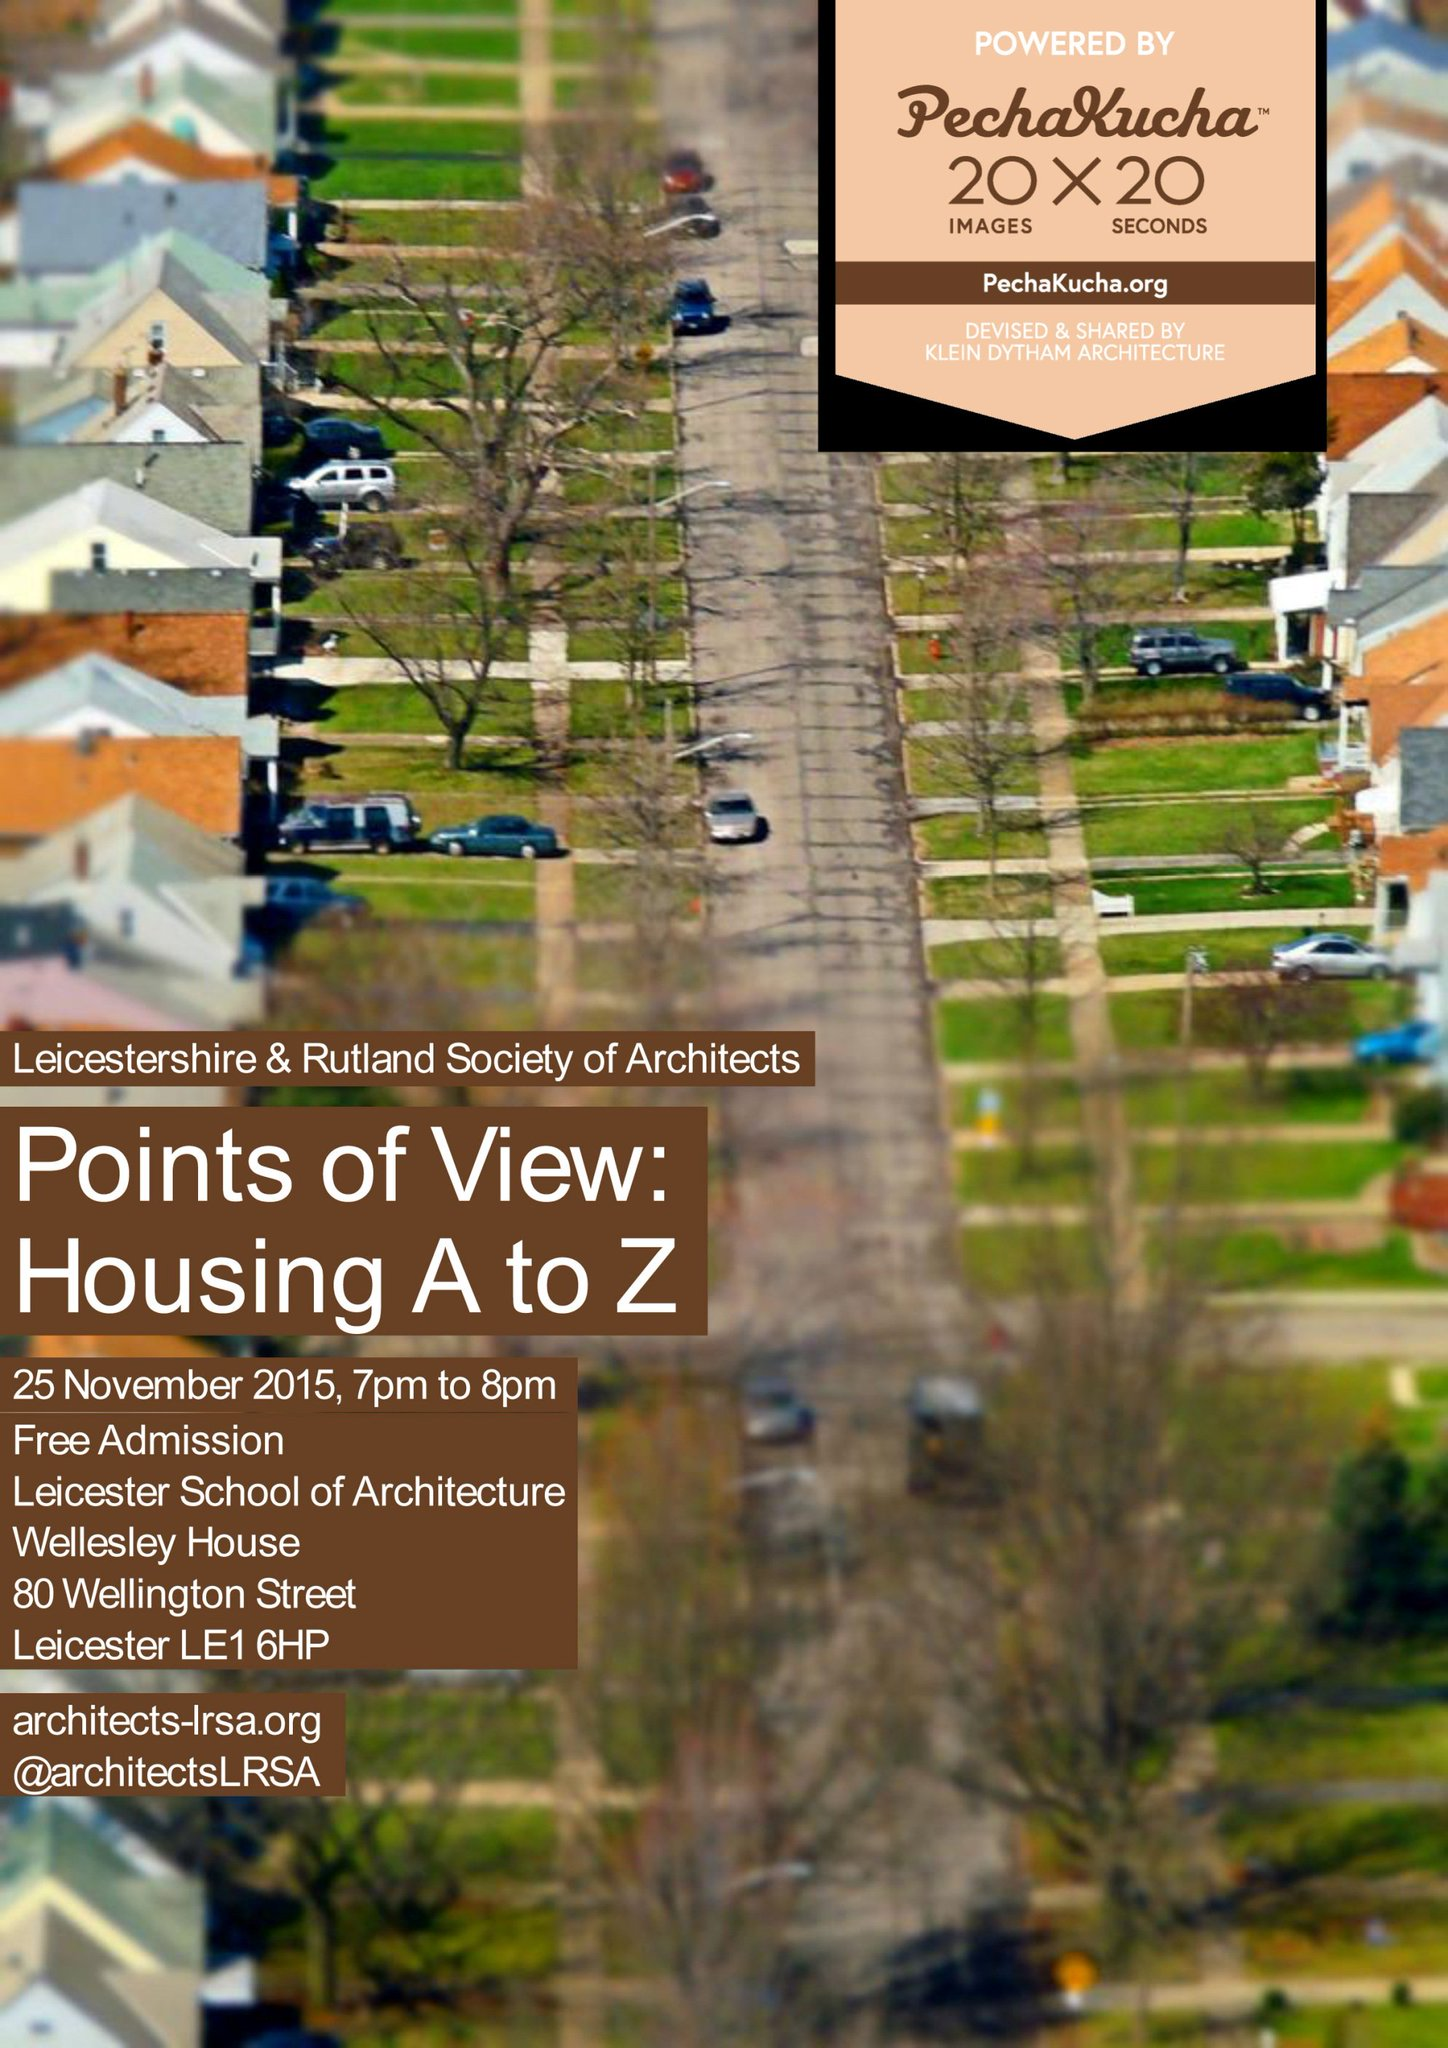 RT @DMUArchitecture: Don't miss tonight's #PechaKucha #Architecture event @dmuleicester POINTS OF VIEW: HOUSING A-Z. All welcome! https://t…